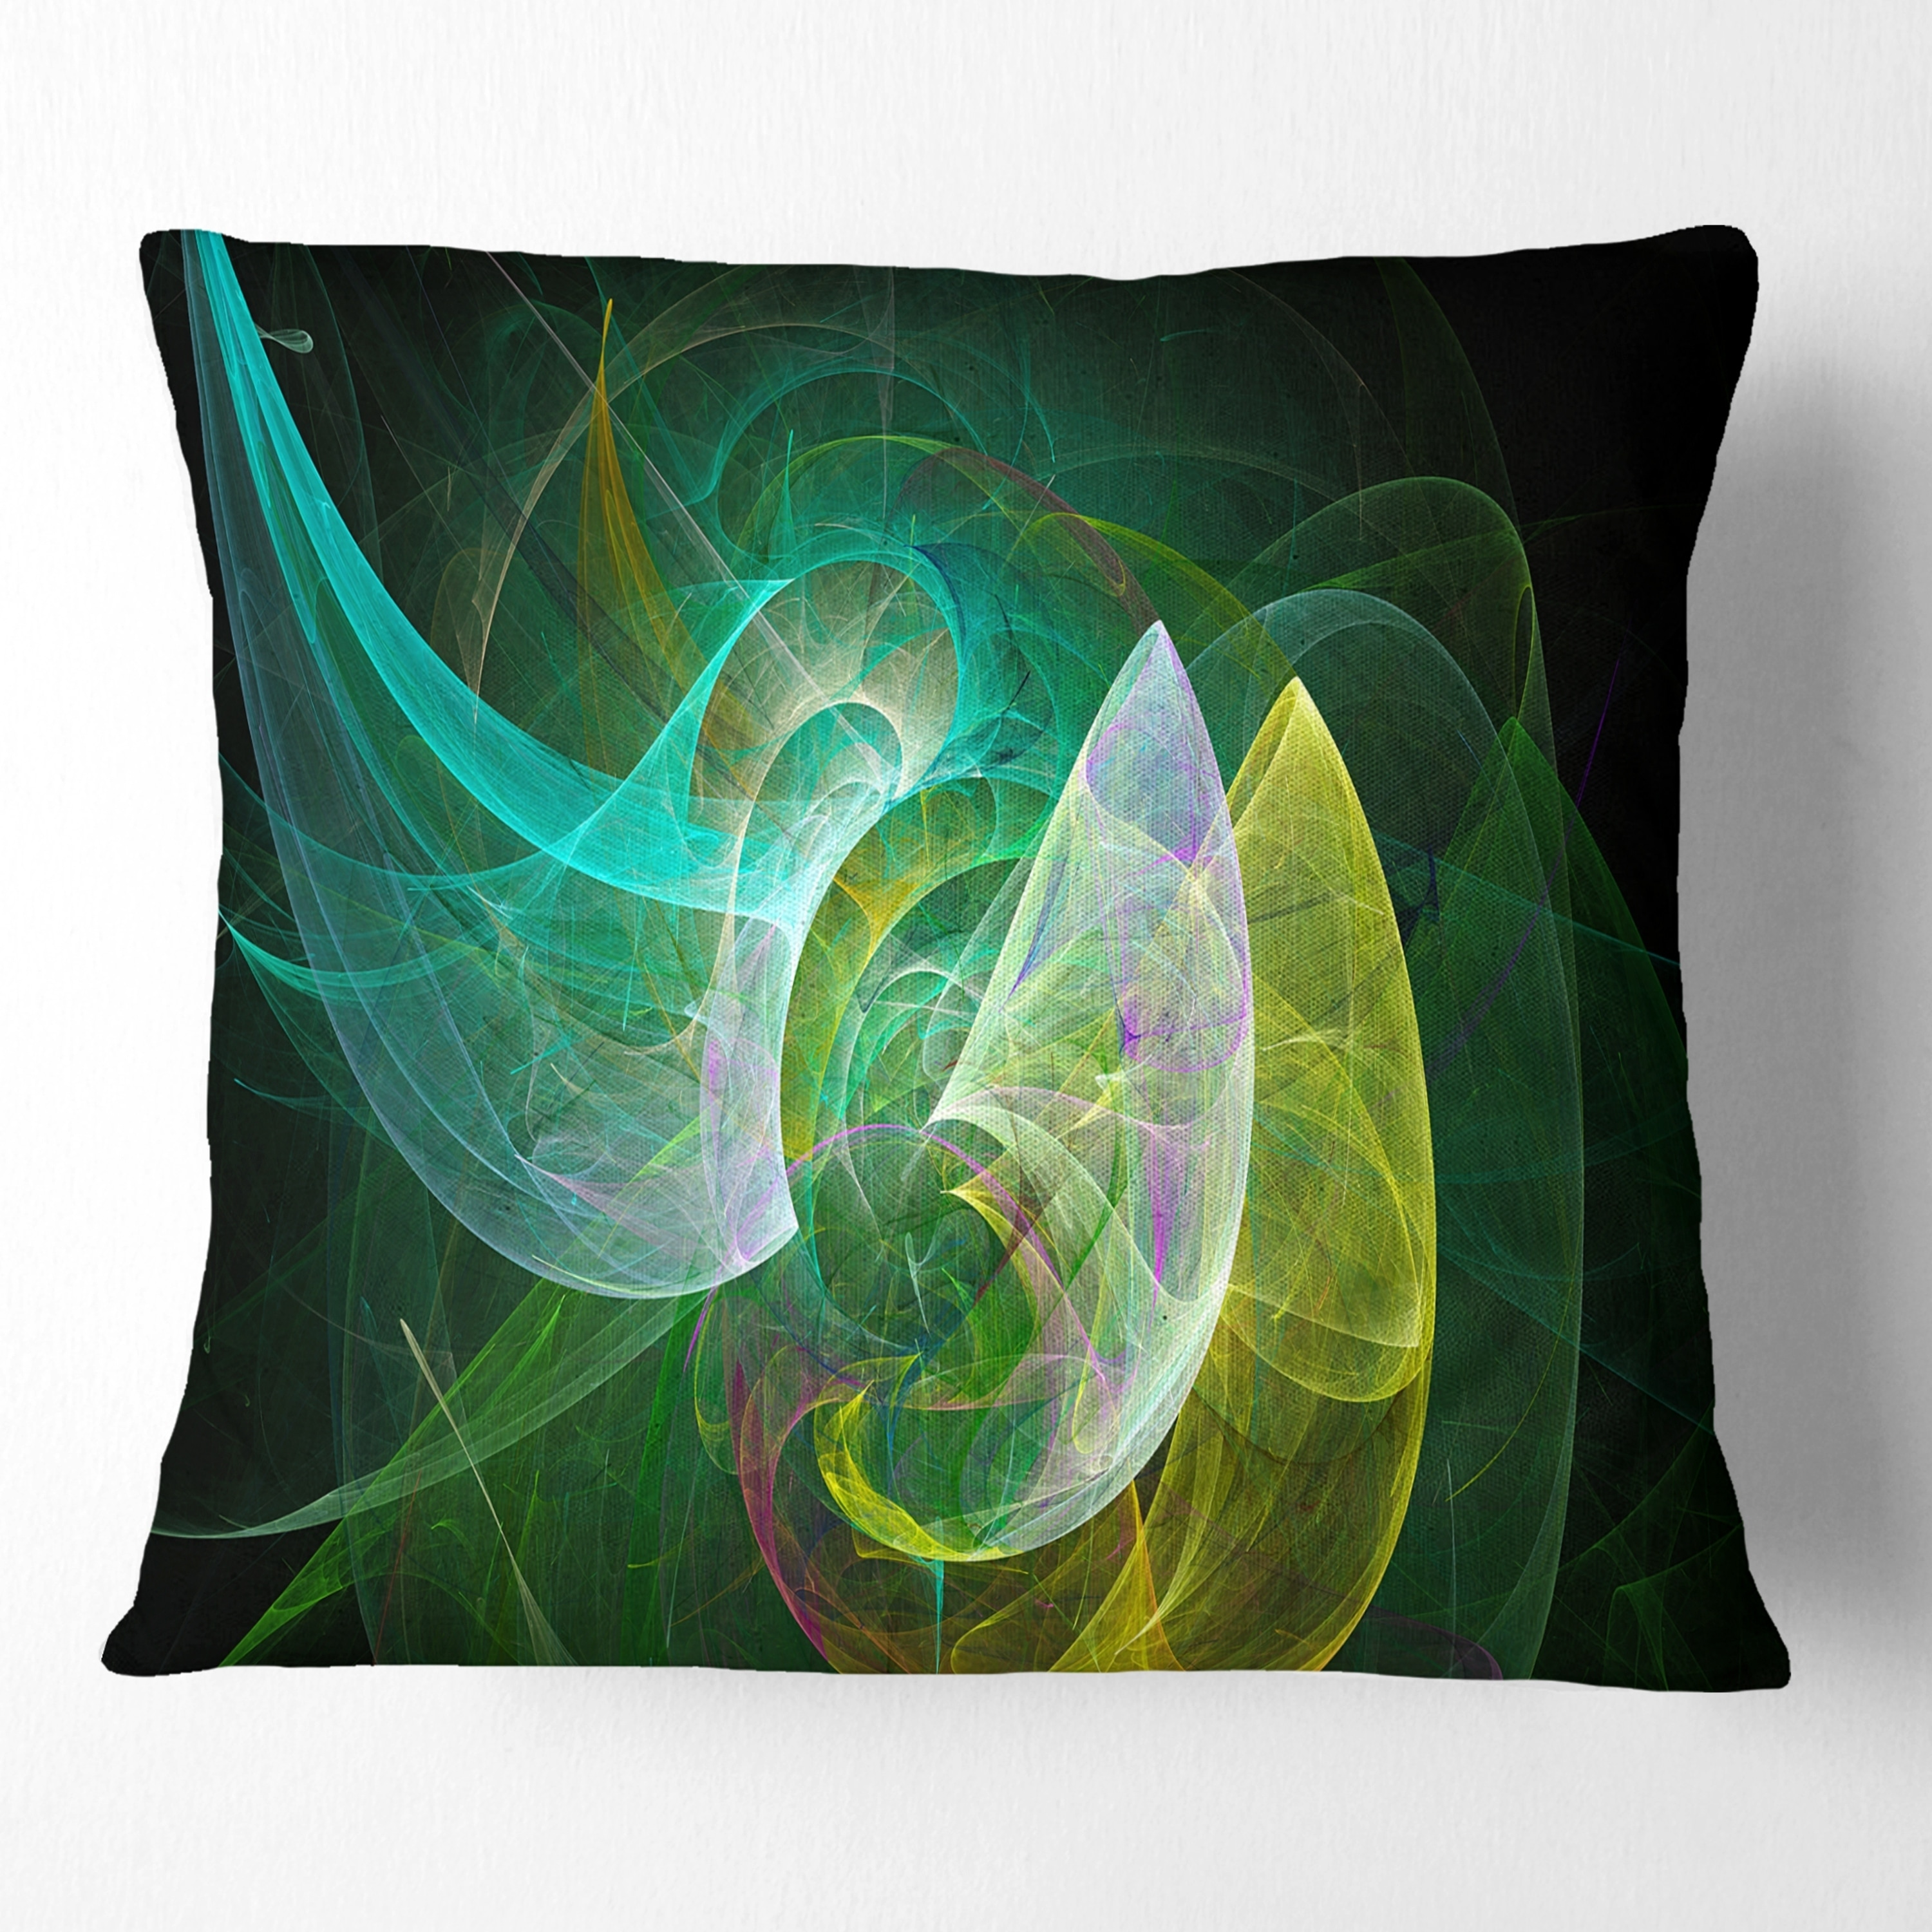 Design Art Designart Green Mystic Psychedelic Texture Abstract Throw Pillow Walmart Com Walmart Com